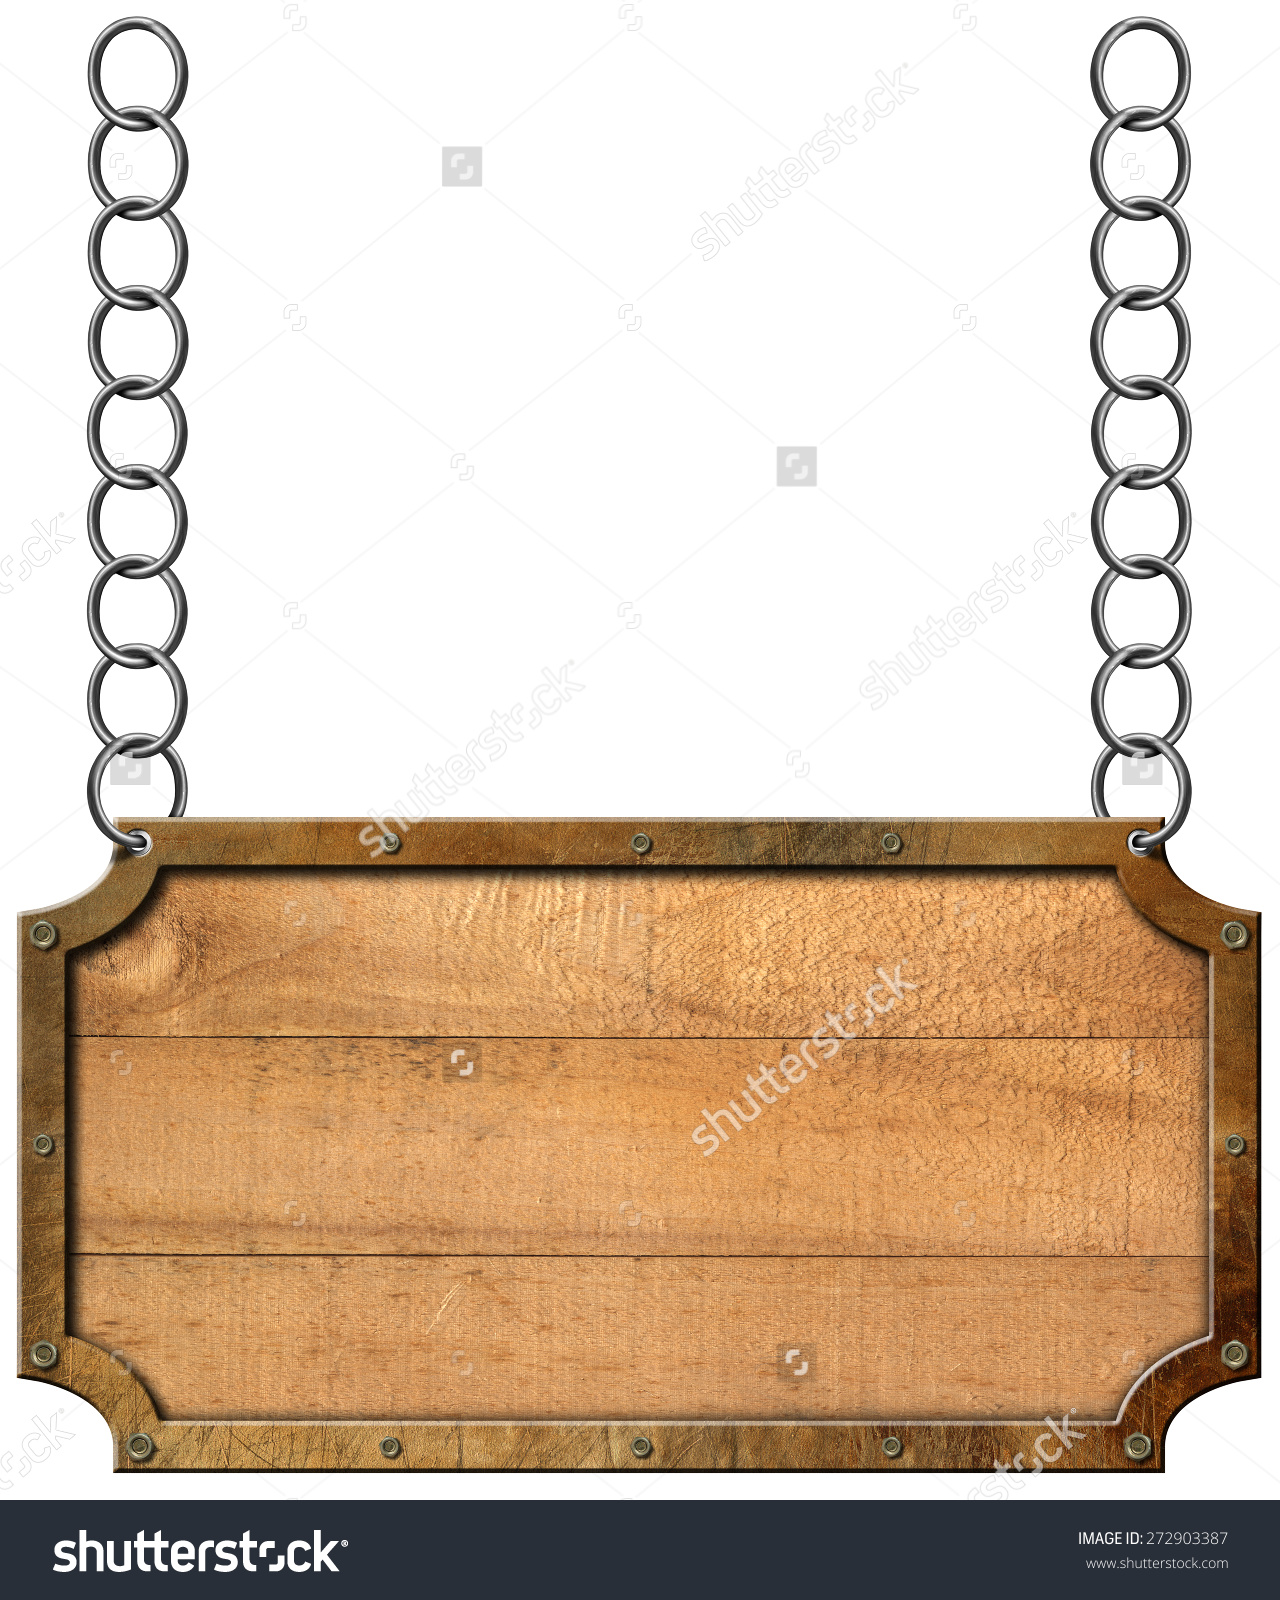 Wood Metal Sign Chain Empty Rectangular Stock Illustration.